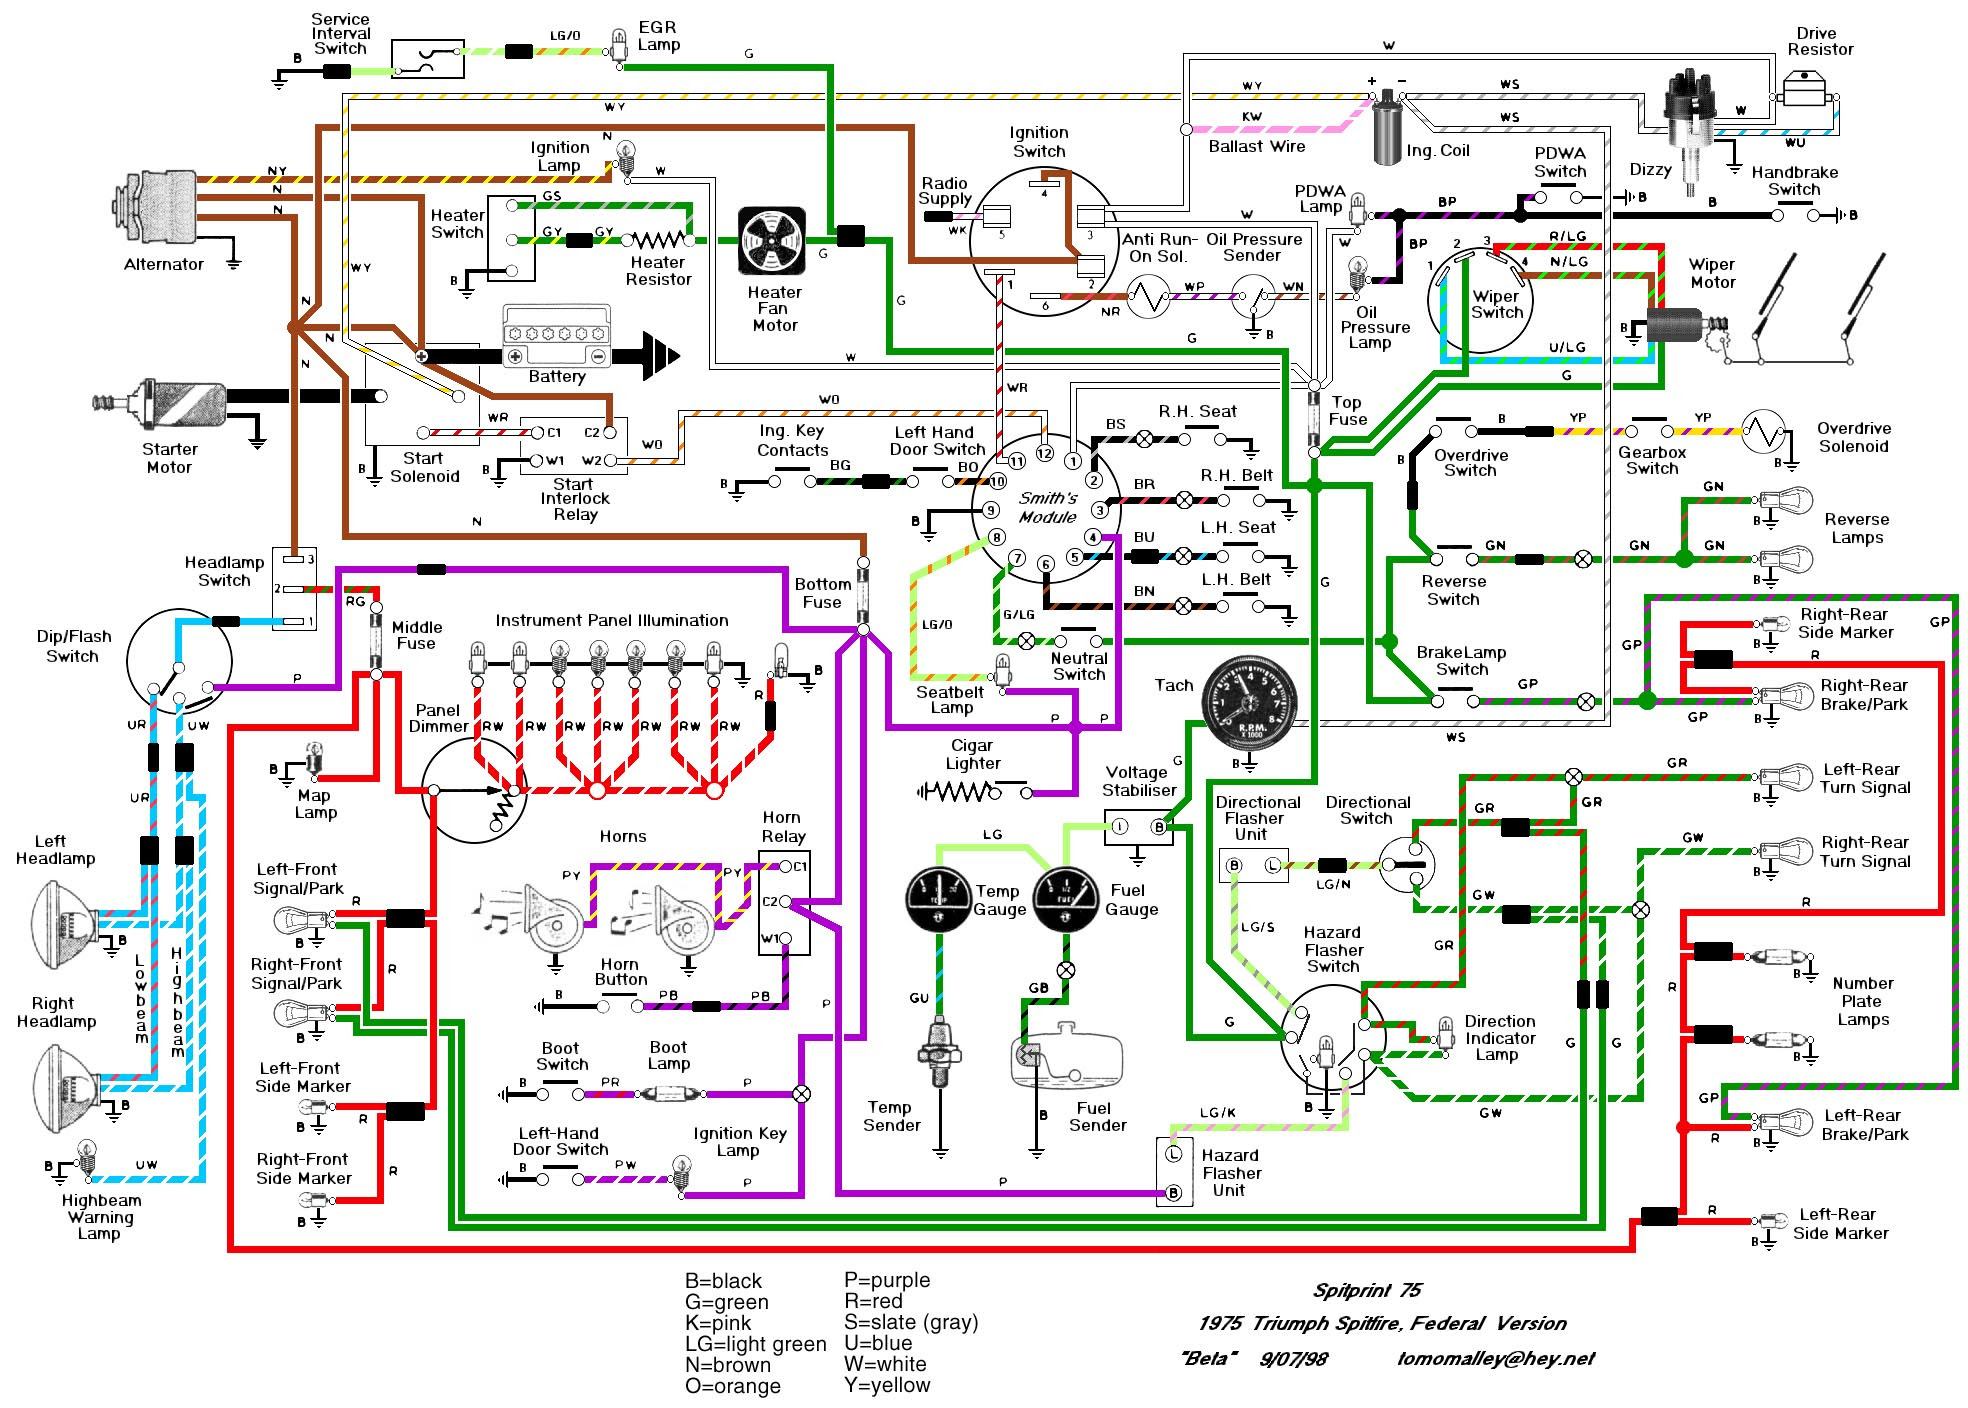 Diagram Wiring Diagram 1973 Triumph Stag 5 Mb New Update December 17 2020 Full Version Hd Quality Triumph Stag Nsawiring Venditabirraartigianale It